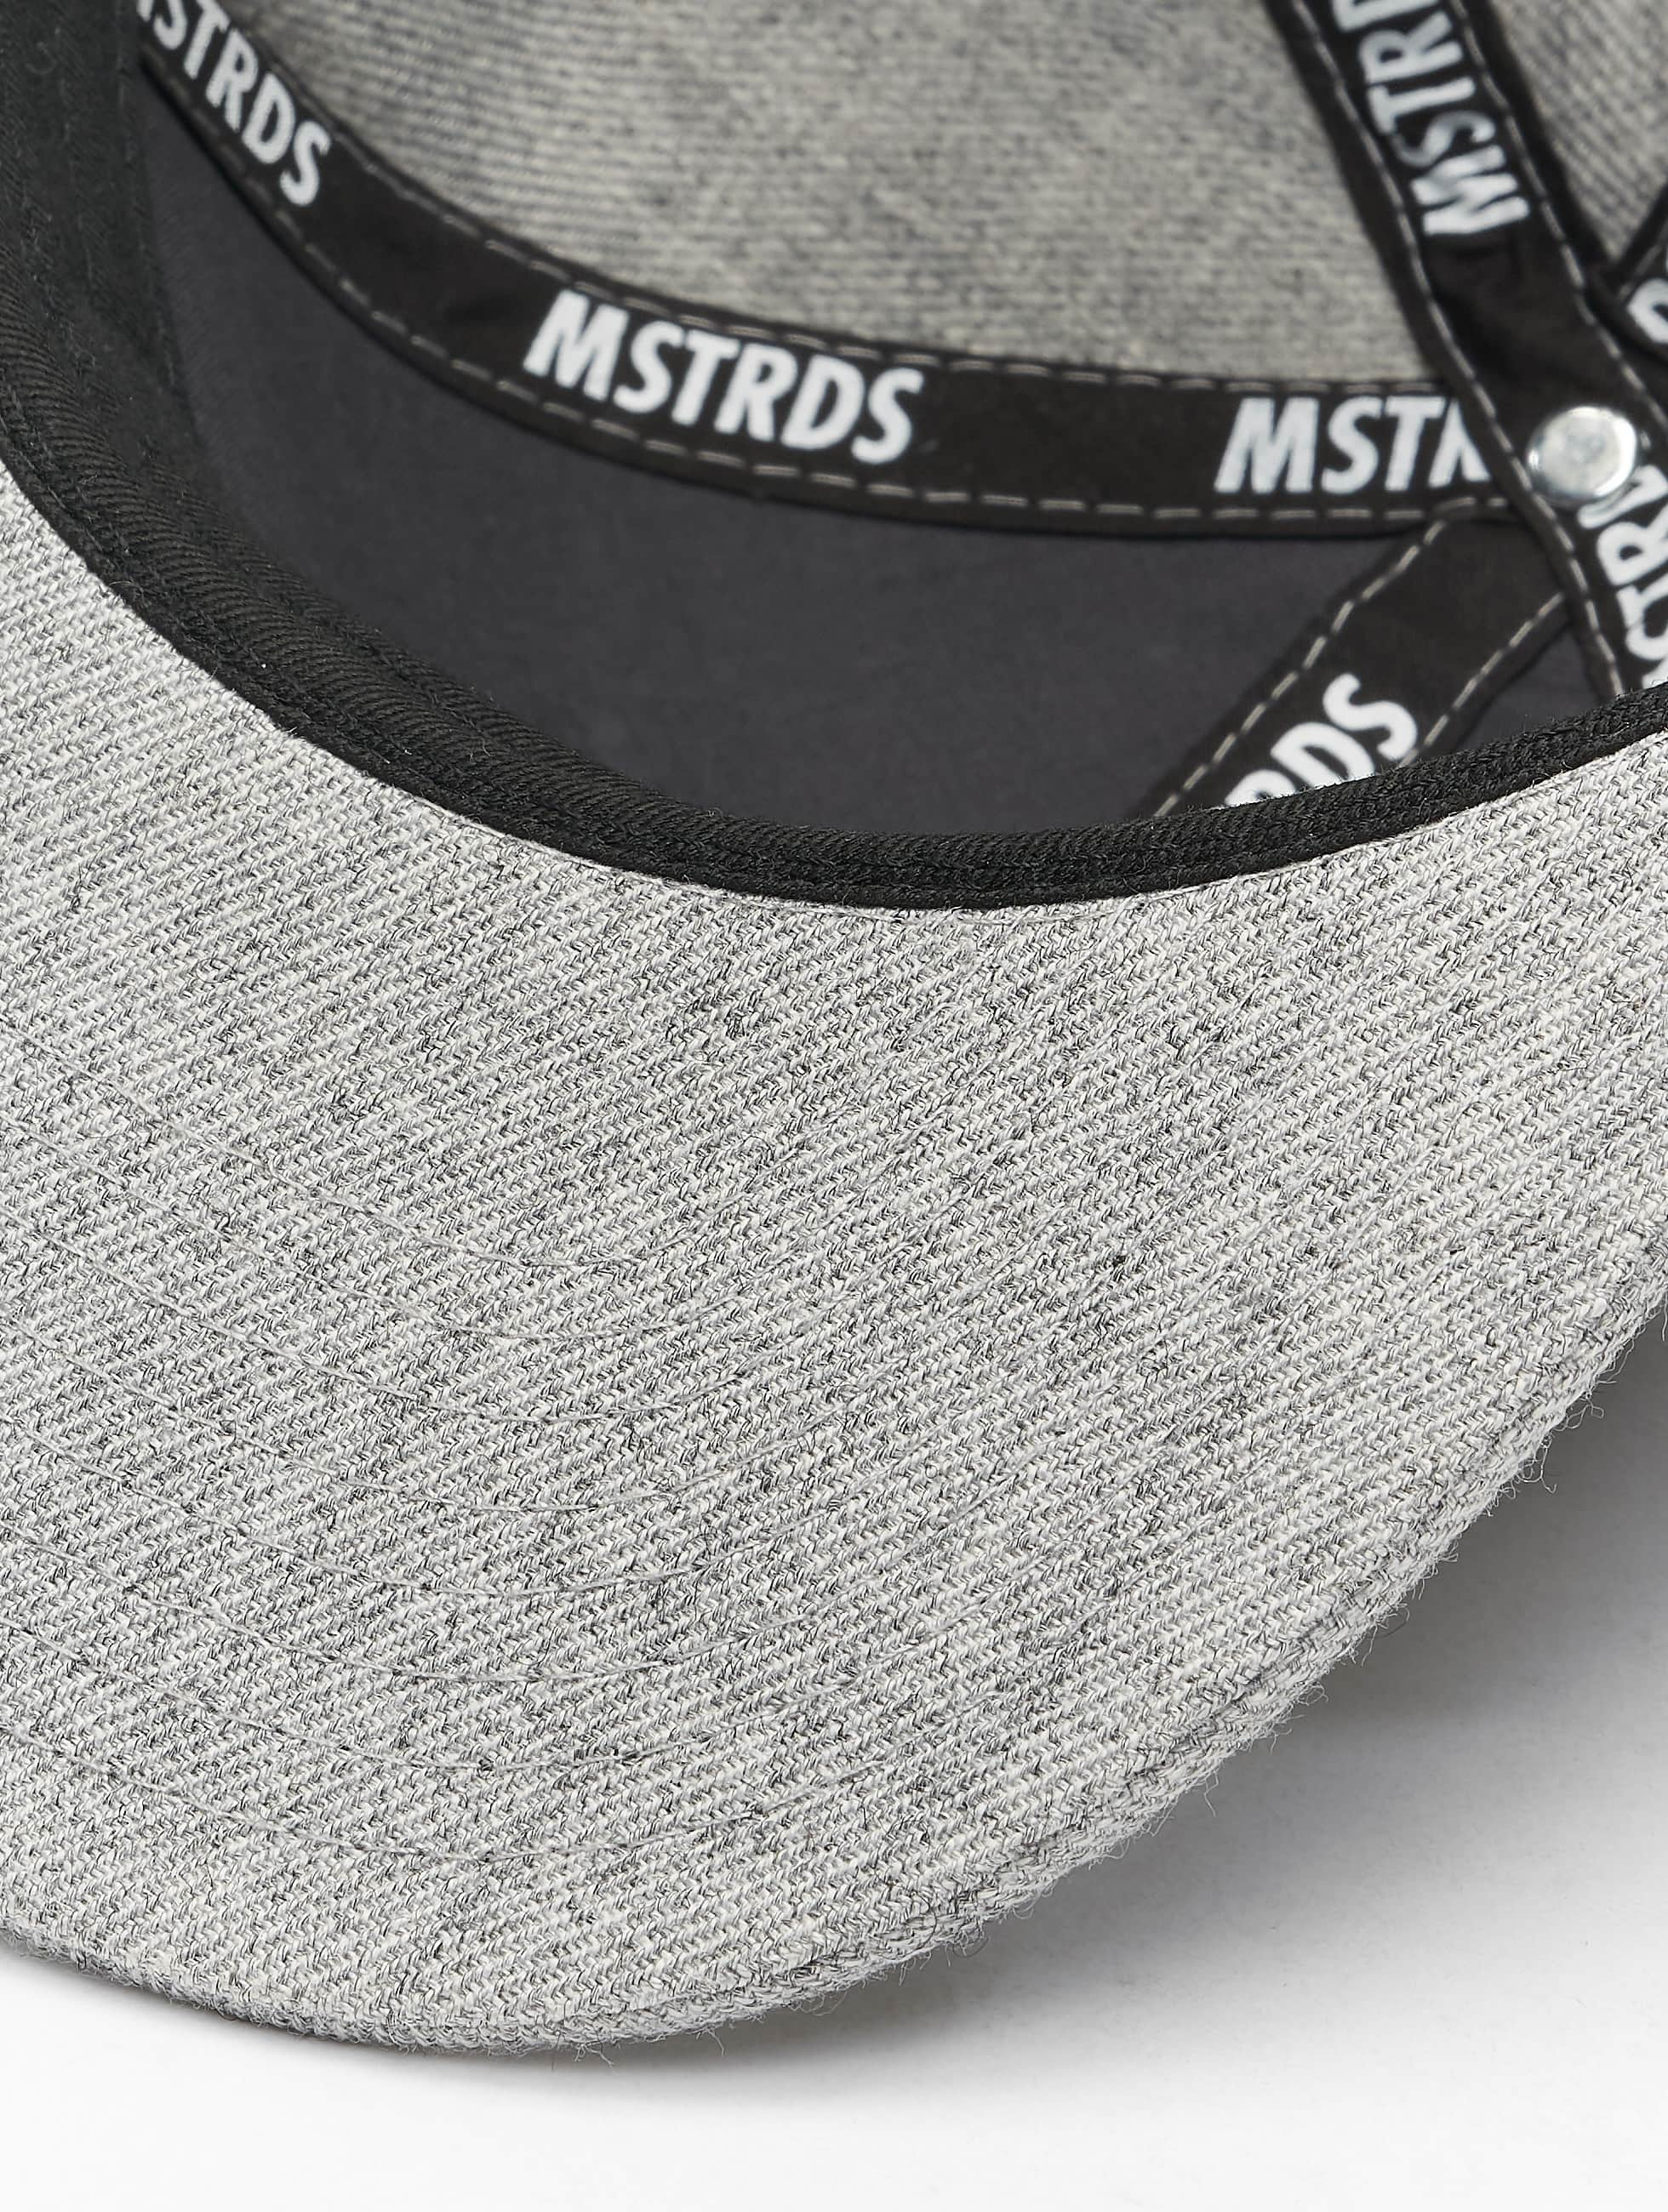 MSTRDS Snapback Caps X Letter harmaa